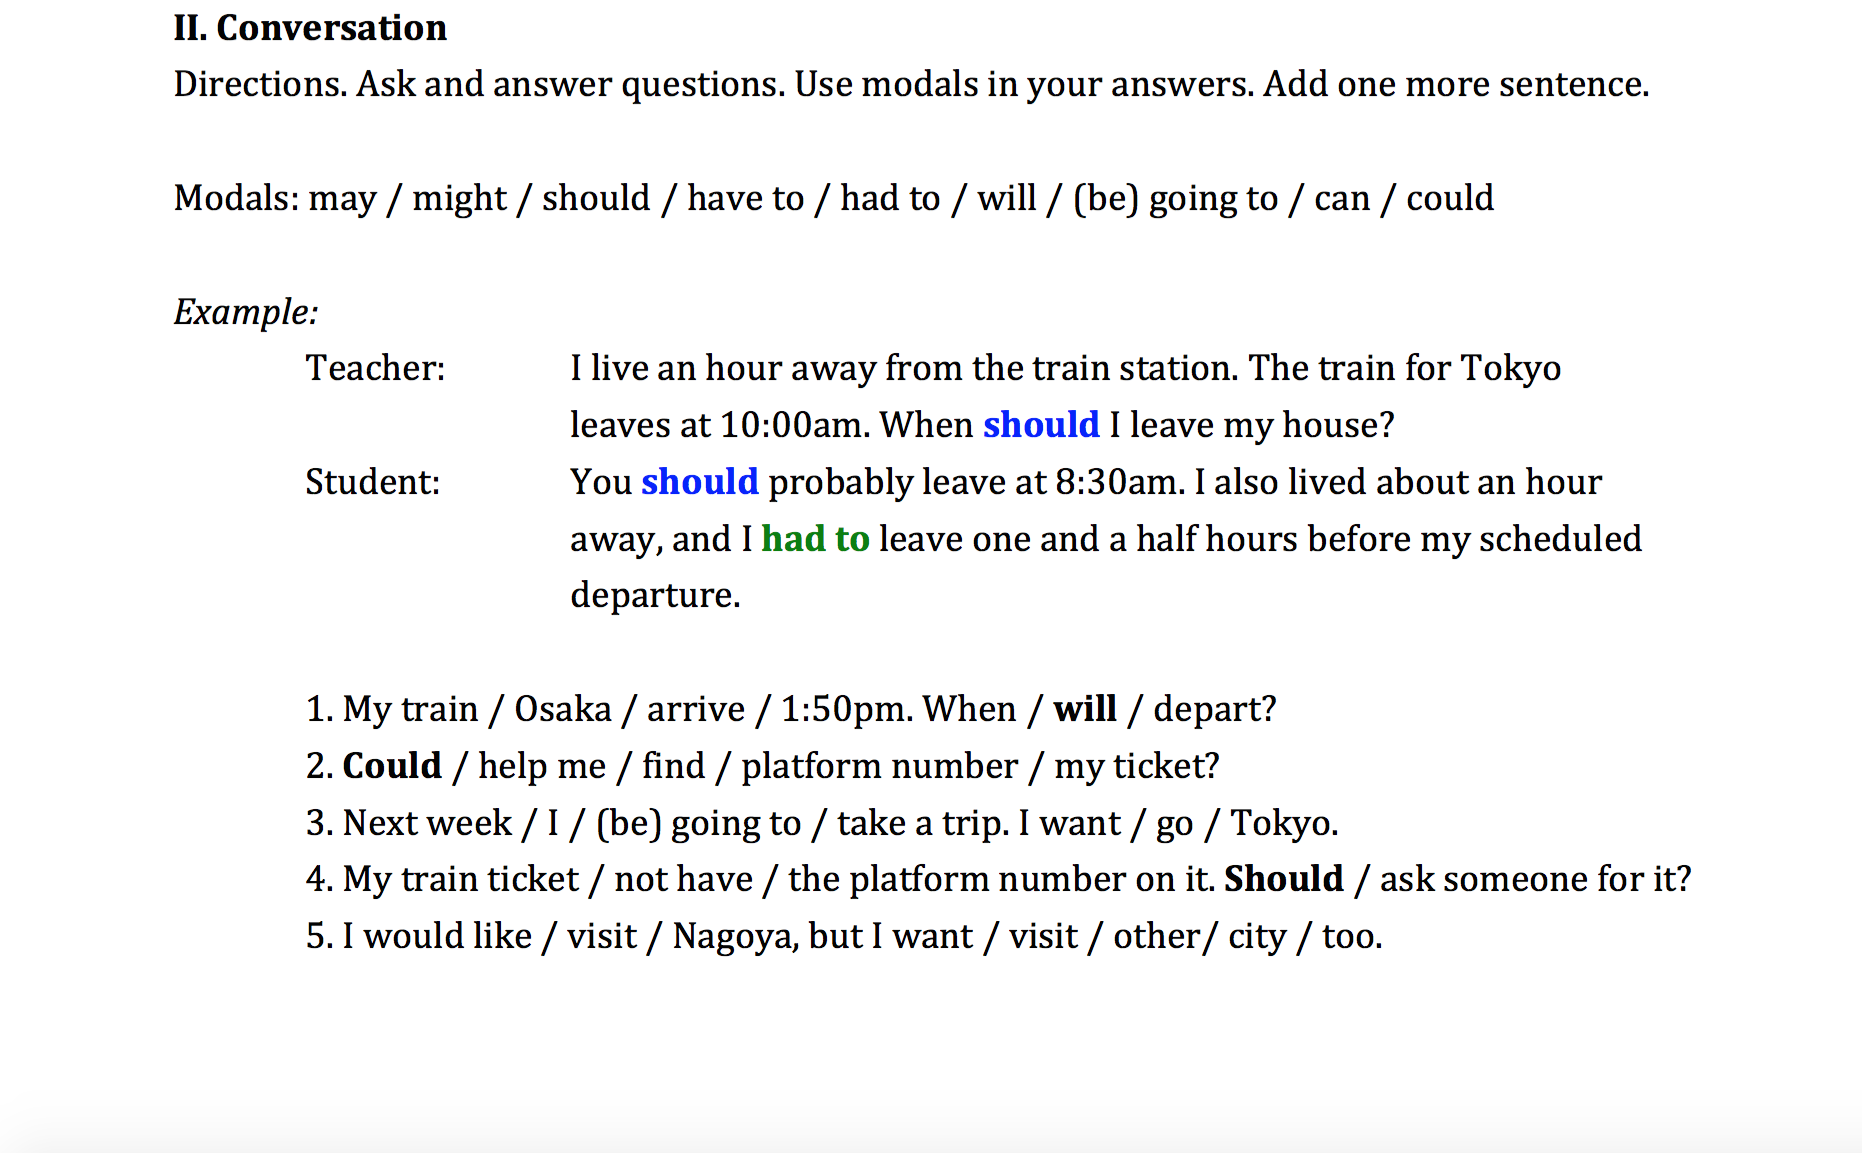 Train Schedule_Asking For and Receiving Advice Using Modals